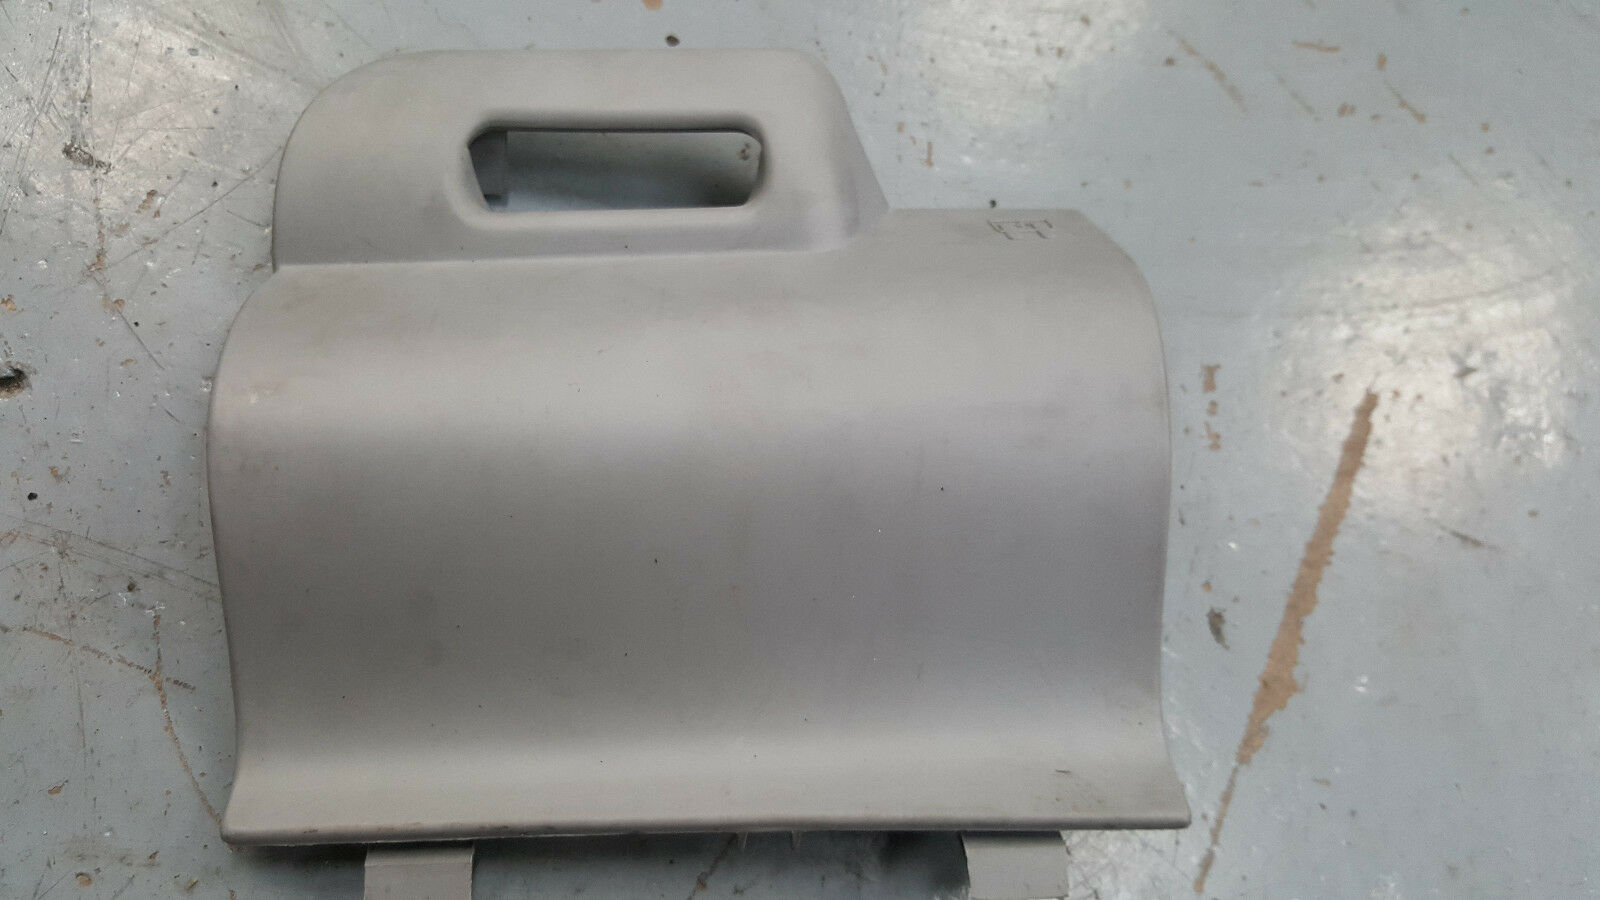 Citroen C3 Pluriel 03-10 Interior Glove Box Fuse Cover Panel 9641383677 1  of 3Only 1 available ...